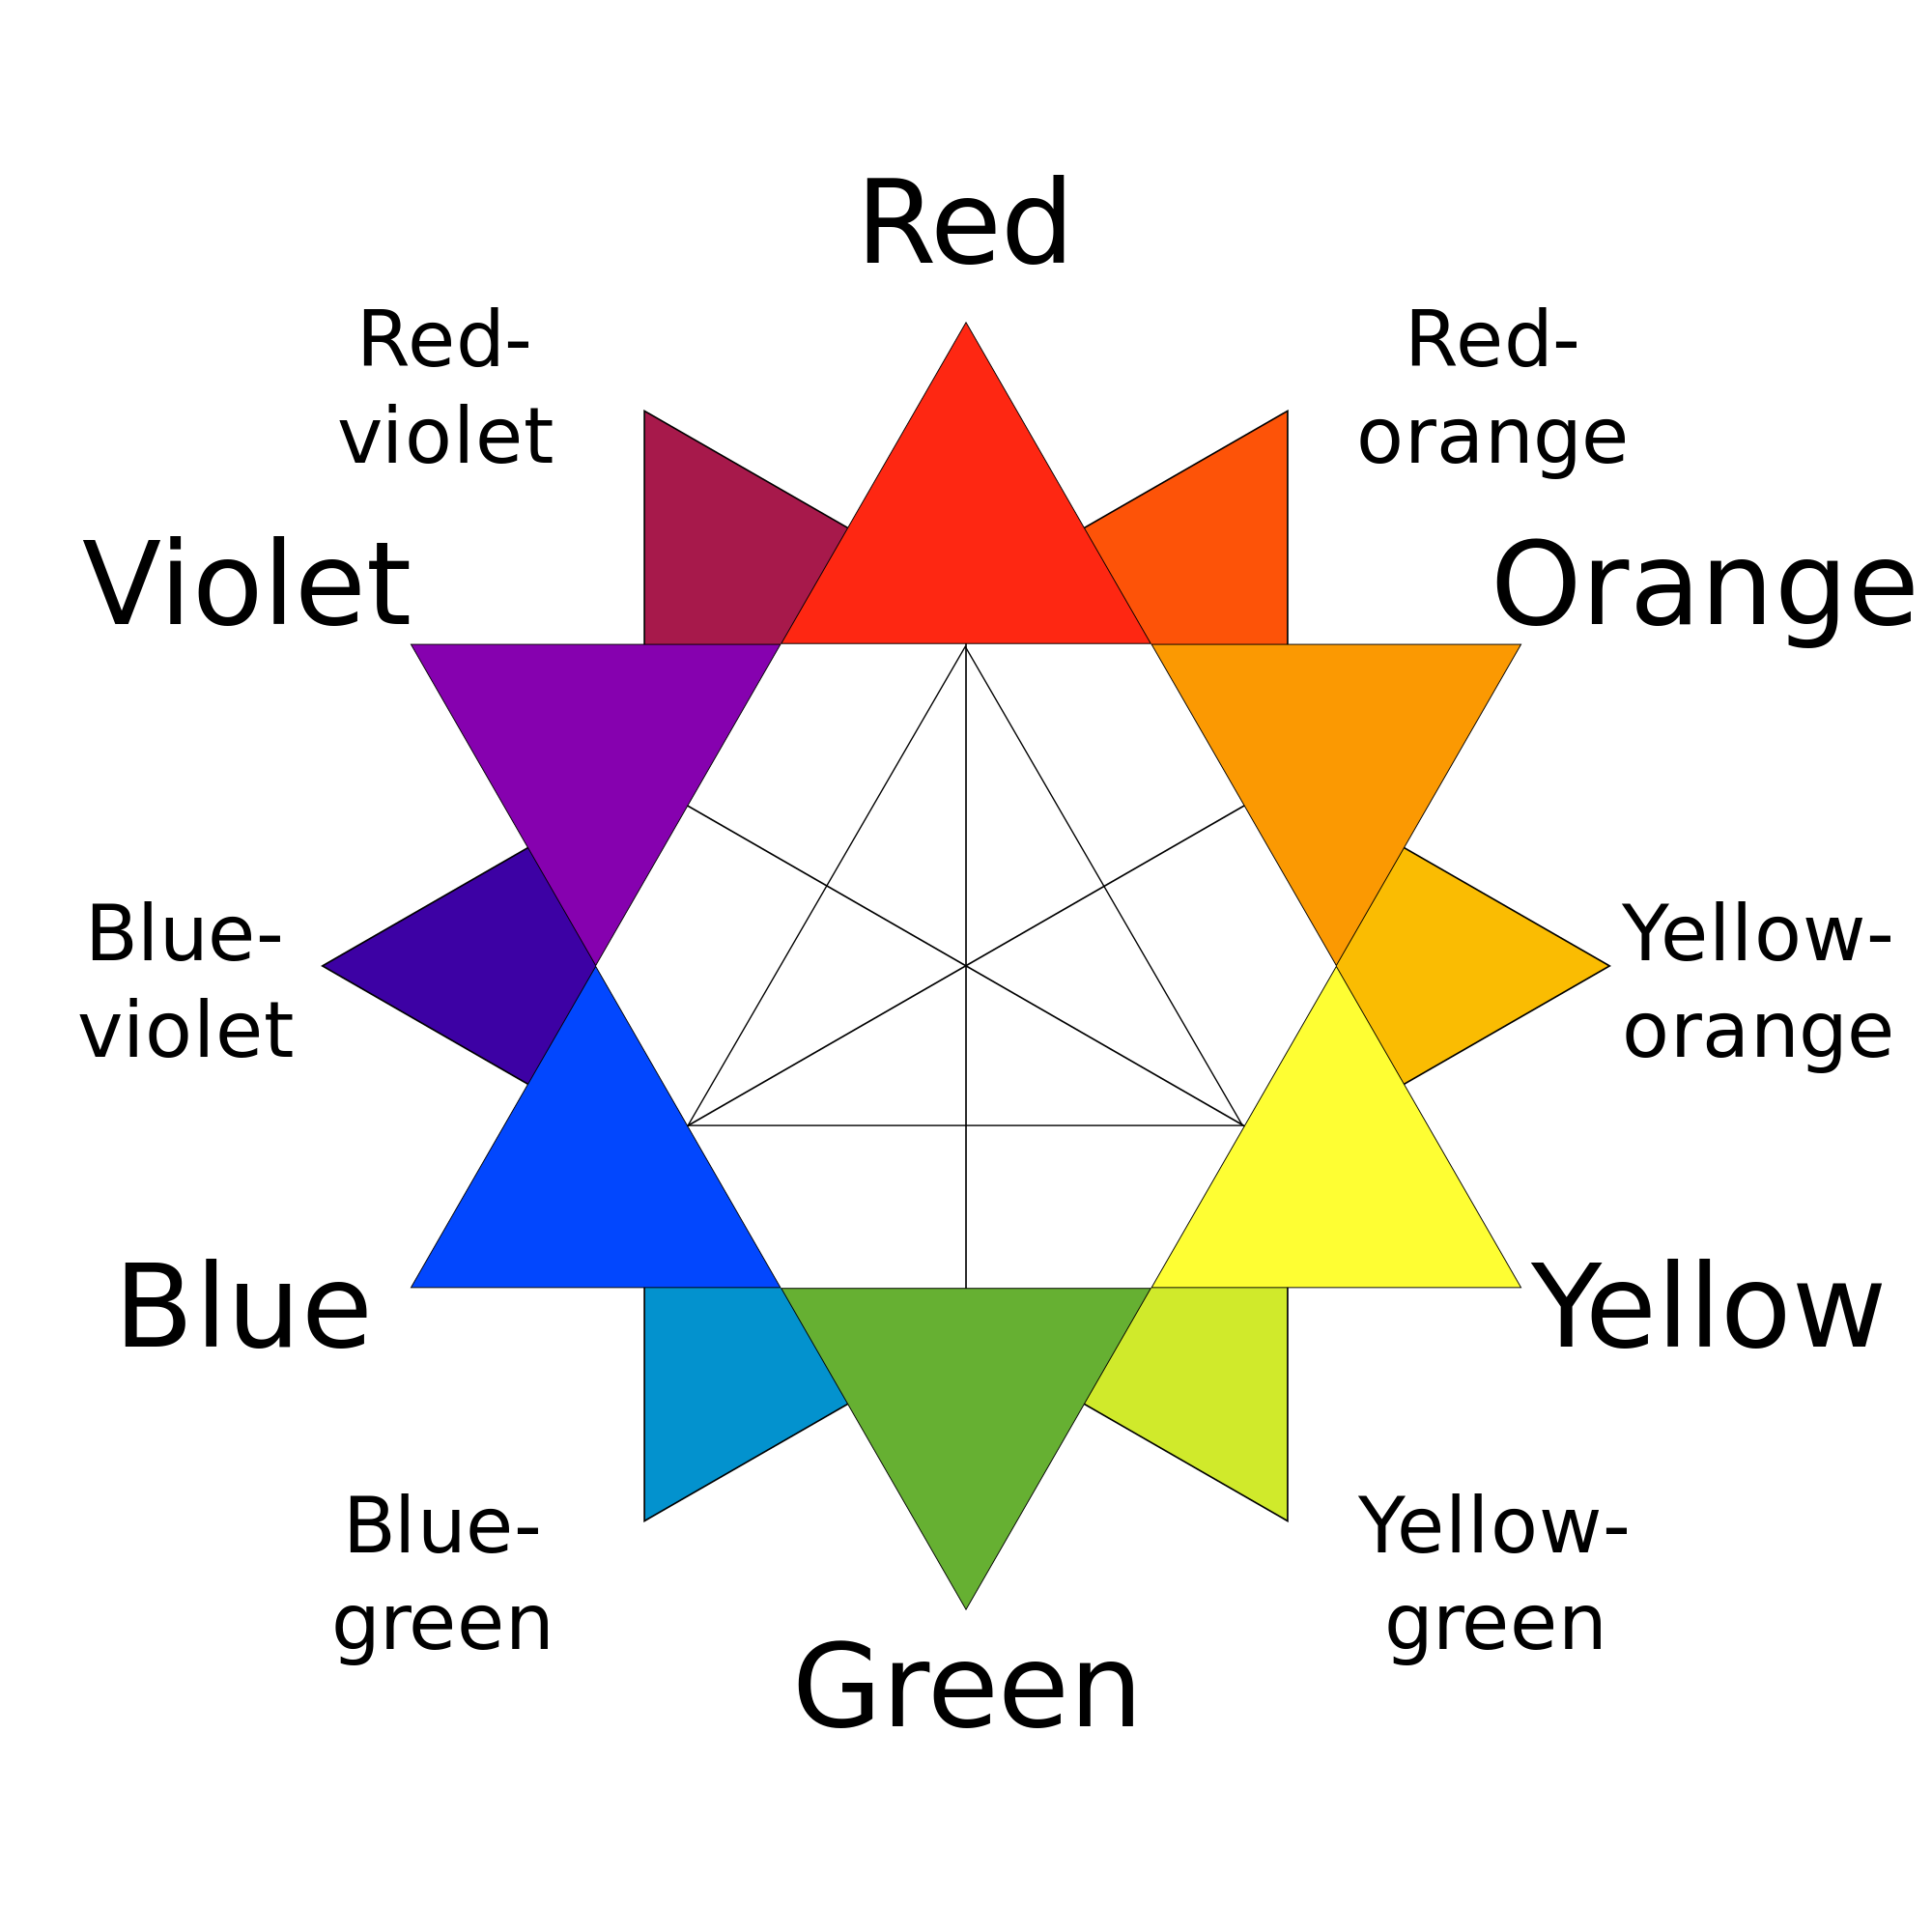 File:Color star-en.svg - Wikimedia Commons